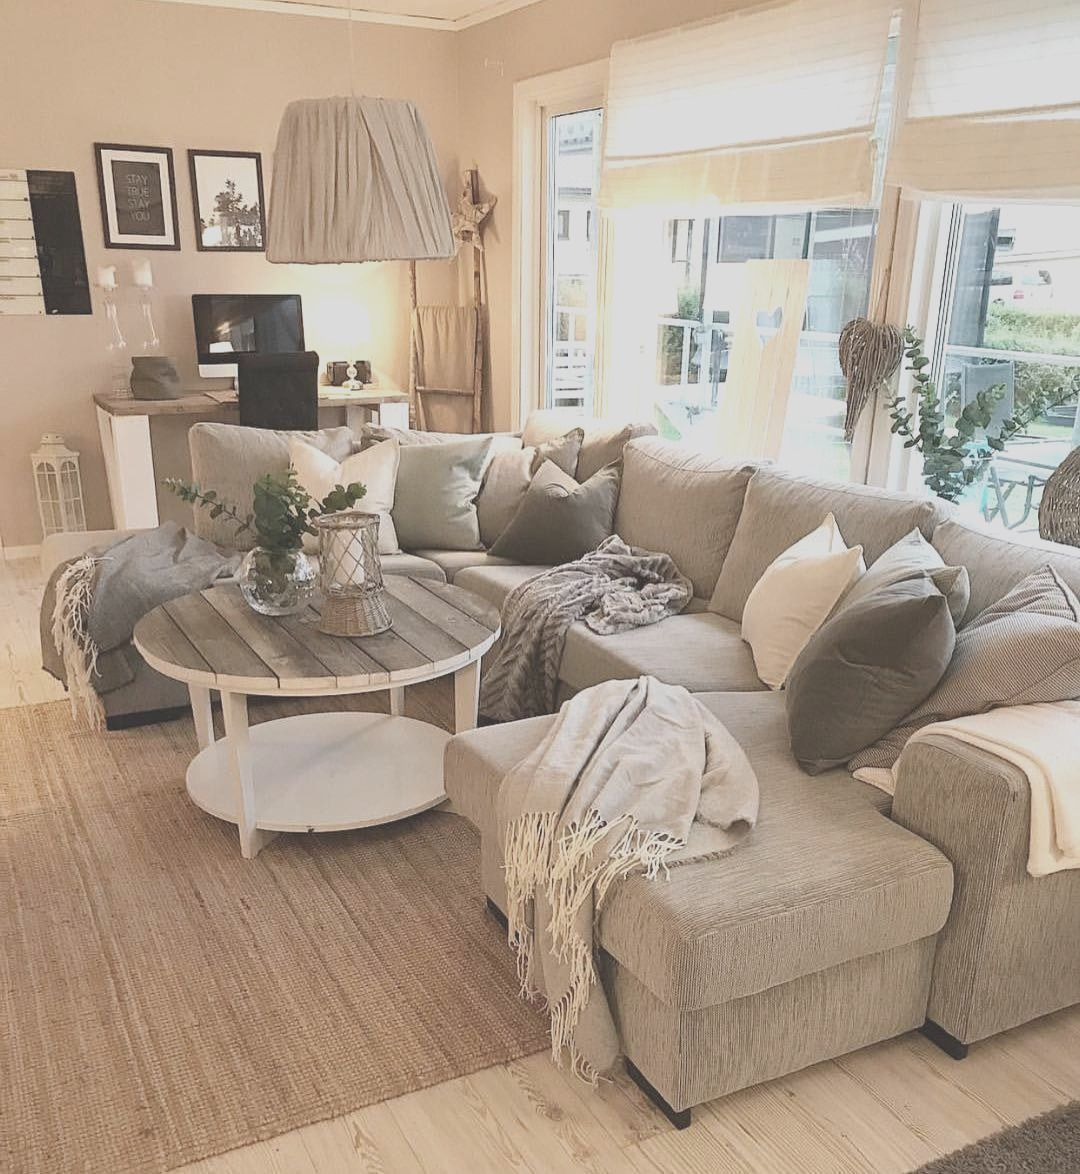 38 Comfortable Grey Living Room Sofa Ideas You Must Check In 2020 Living Room Decor Apartment Simple Living Room Farmhouse Decor Living Room